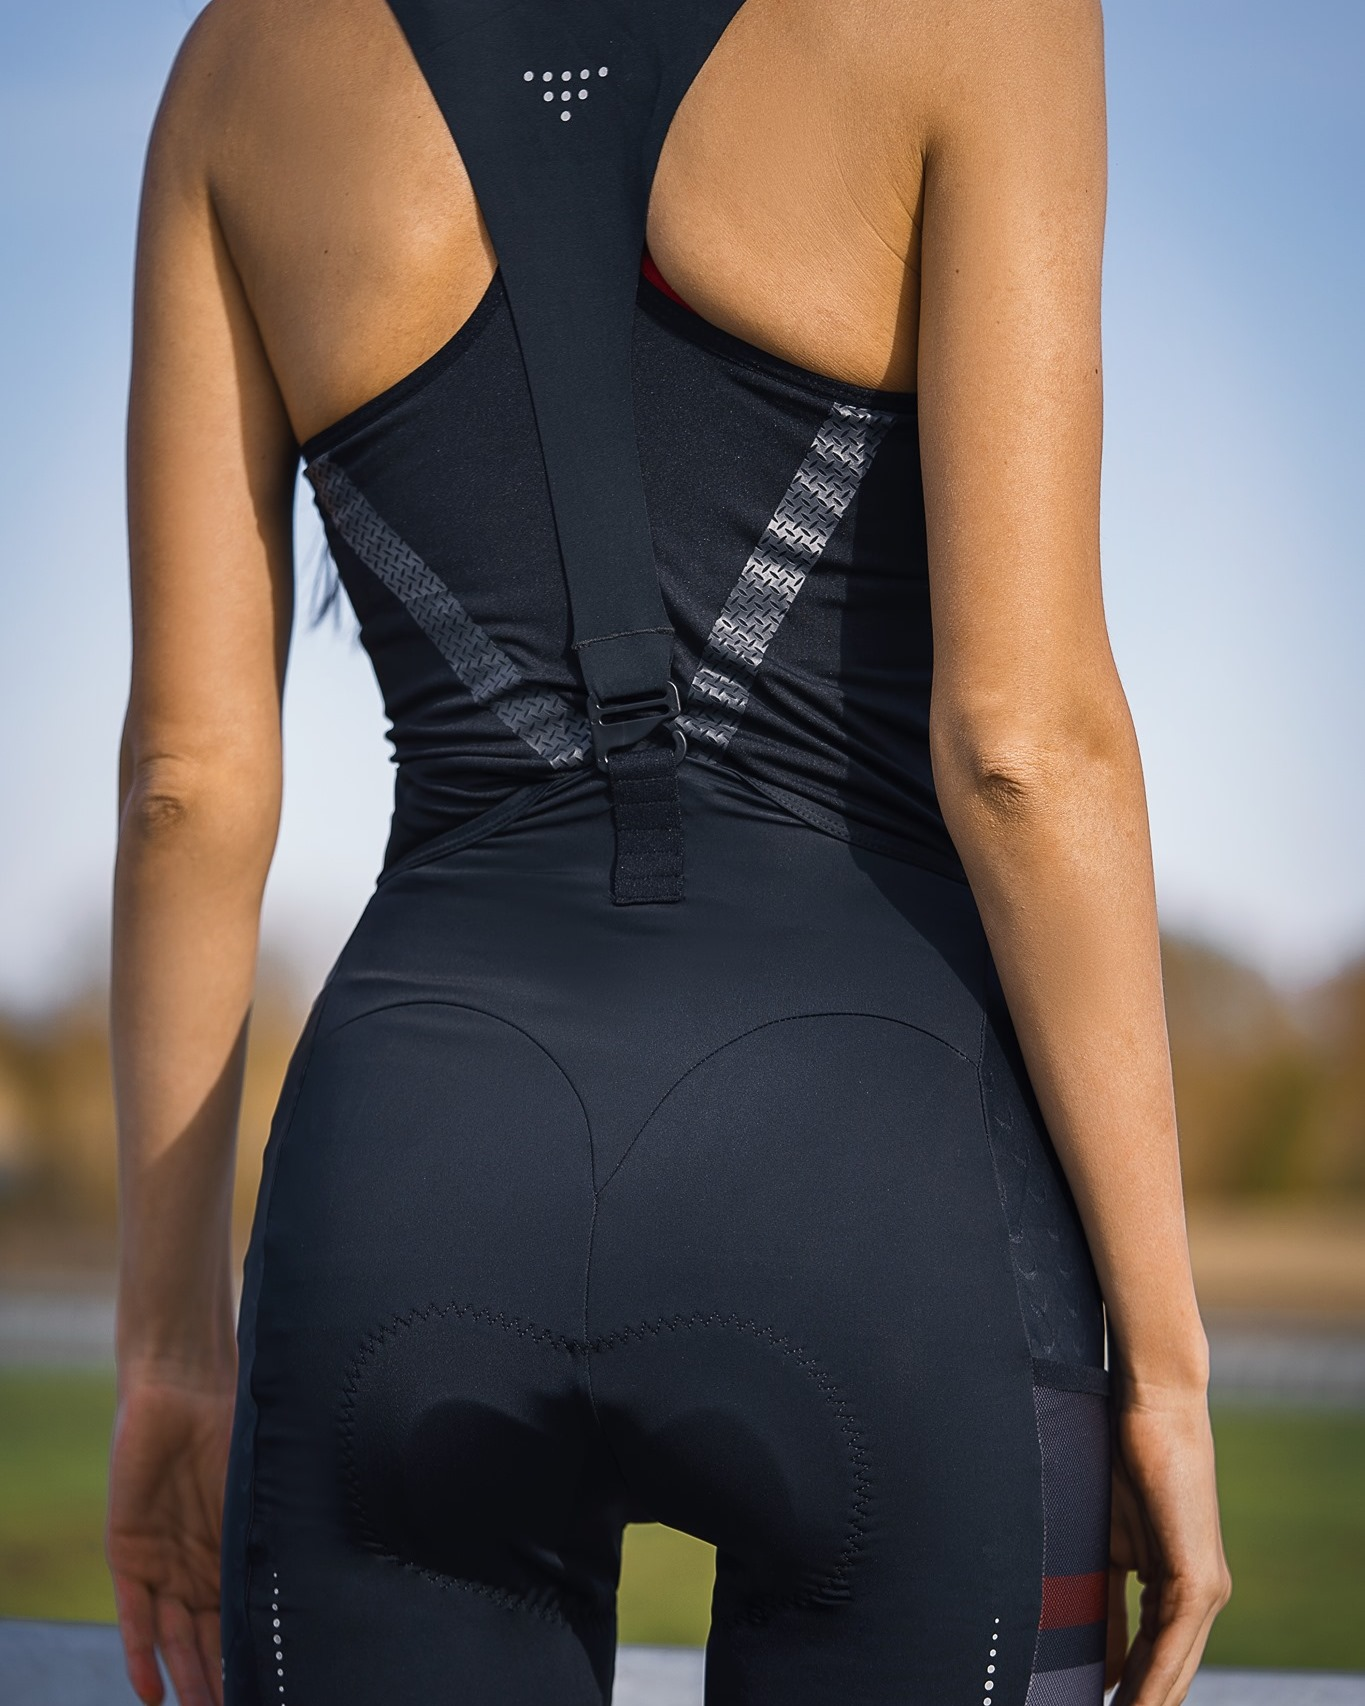 One of the essentials in long ride, Bib short.  L0C05114 brings the comfort and function when #cycling , chamois imported from Italy good for 3 hours ride,